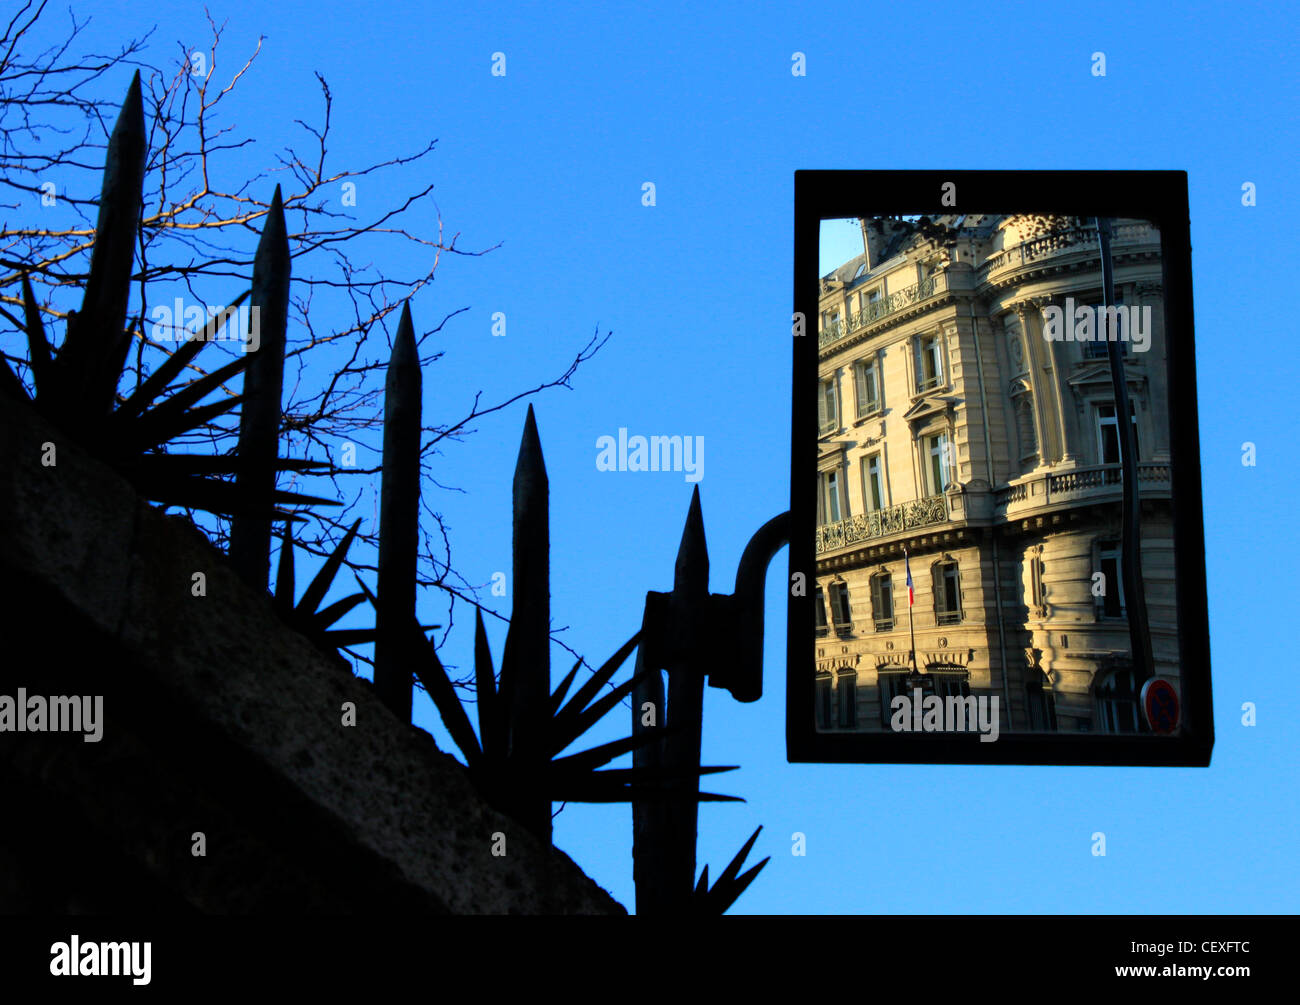 A building's facade is reflected in a mirror in a security fence in Paris, France, December 26, 2011. - Stock Image